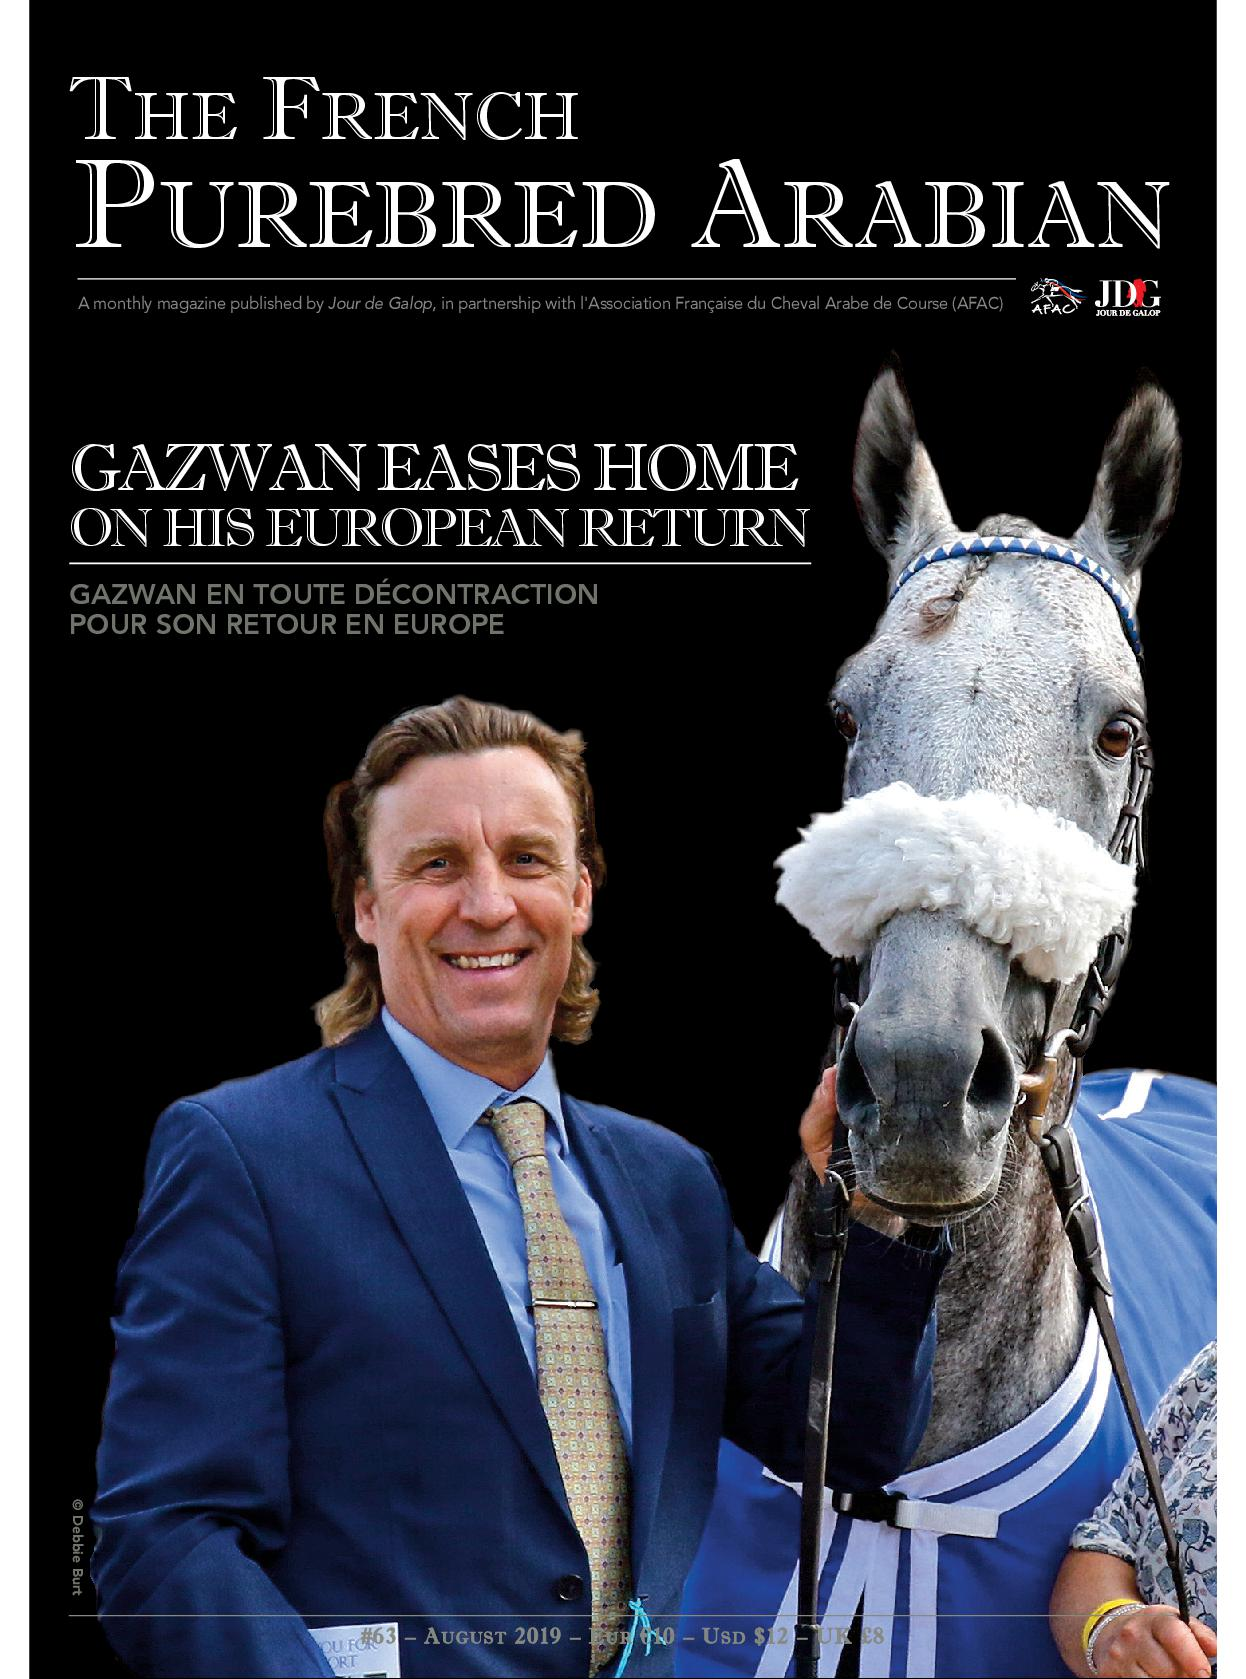 FPA#63 : Gazwan eases home on his European return